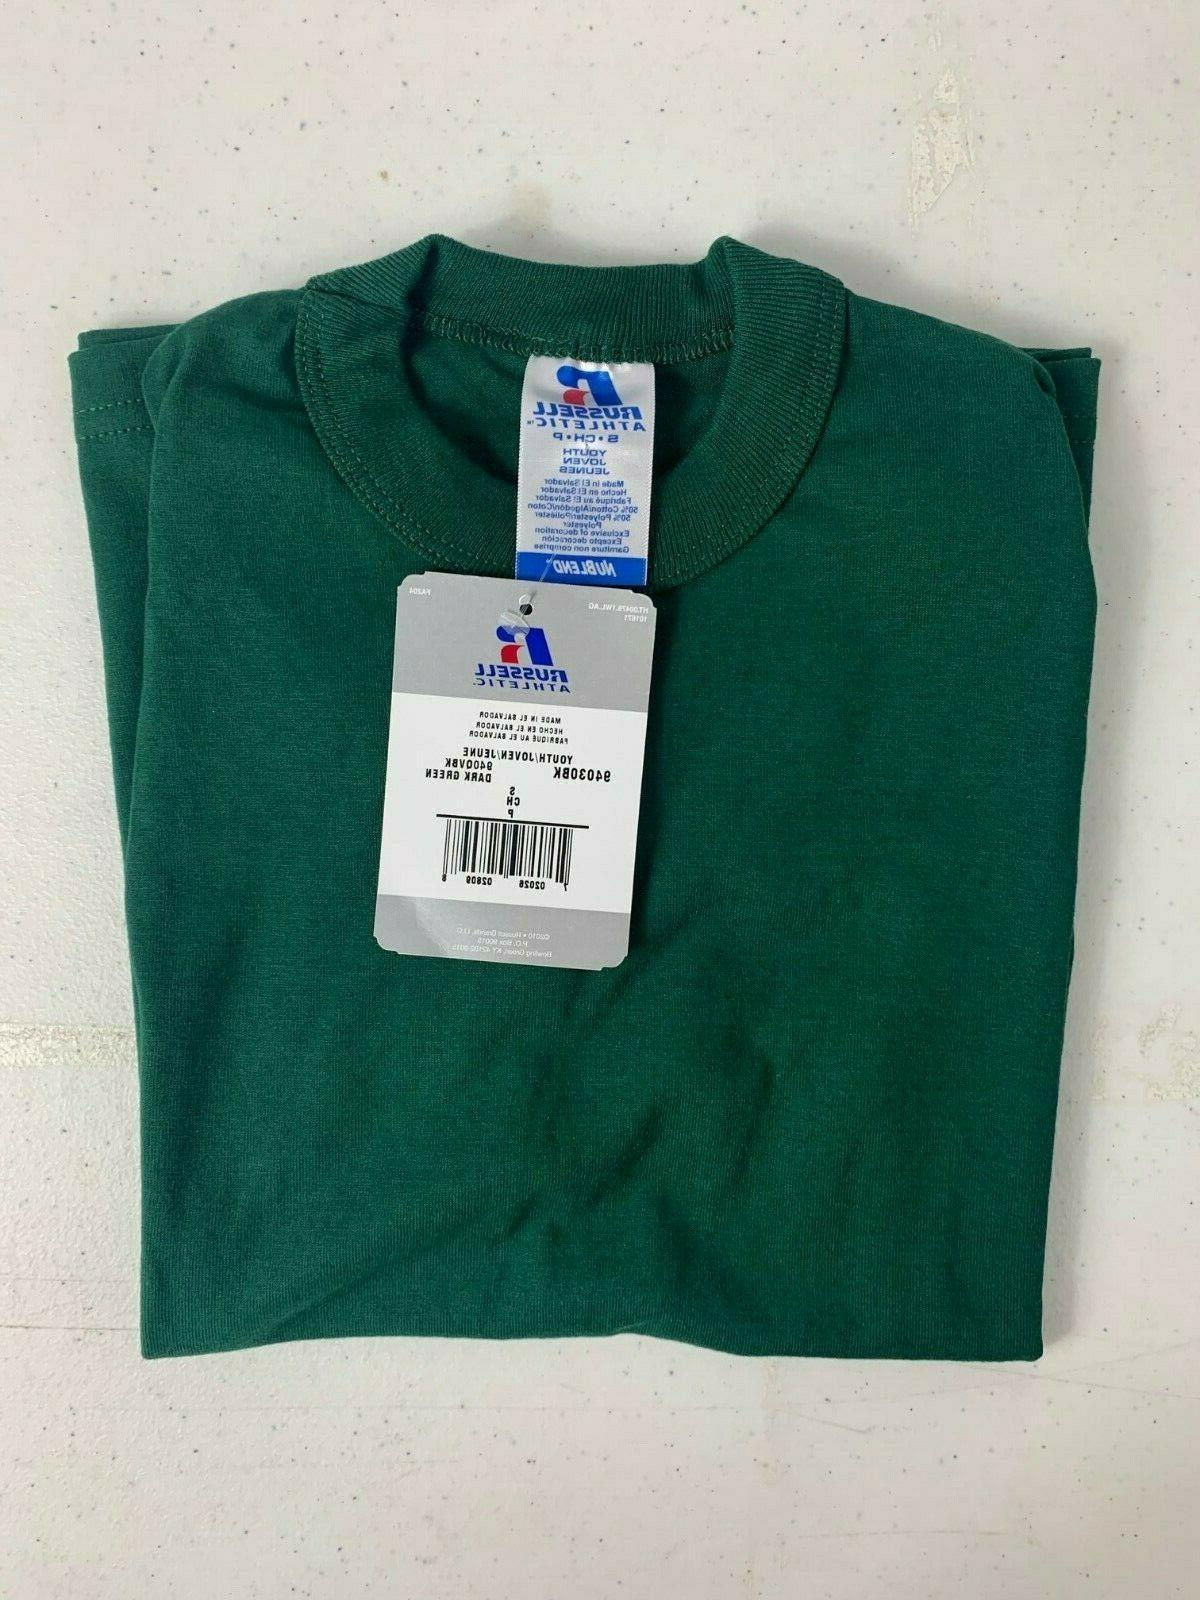 Russell Youth T-Shirt NWT Dark Green Size or T4